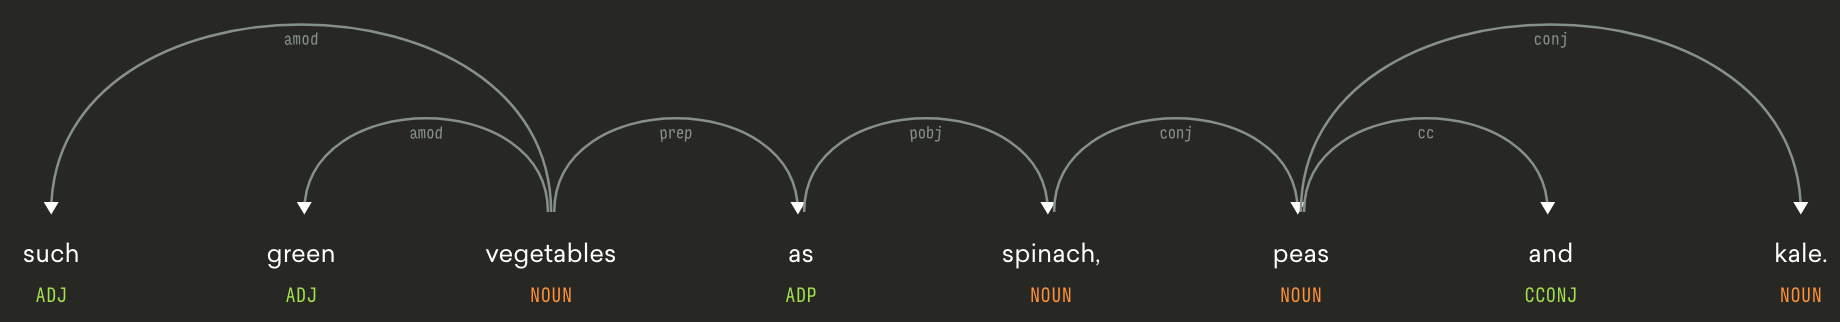 Example dependency path using spaCy